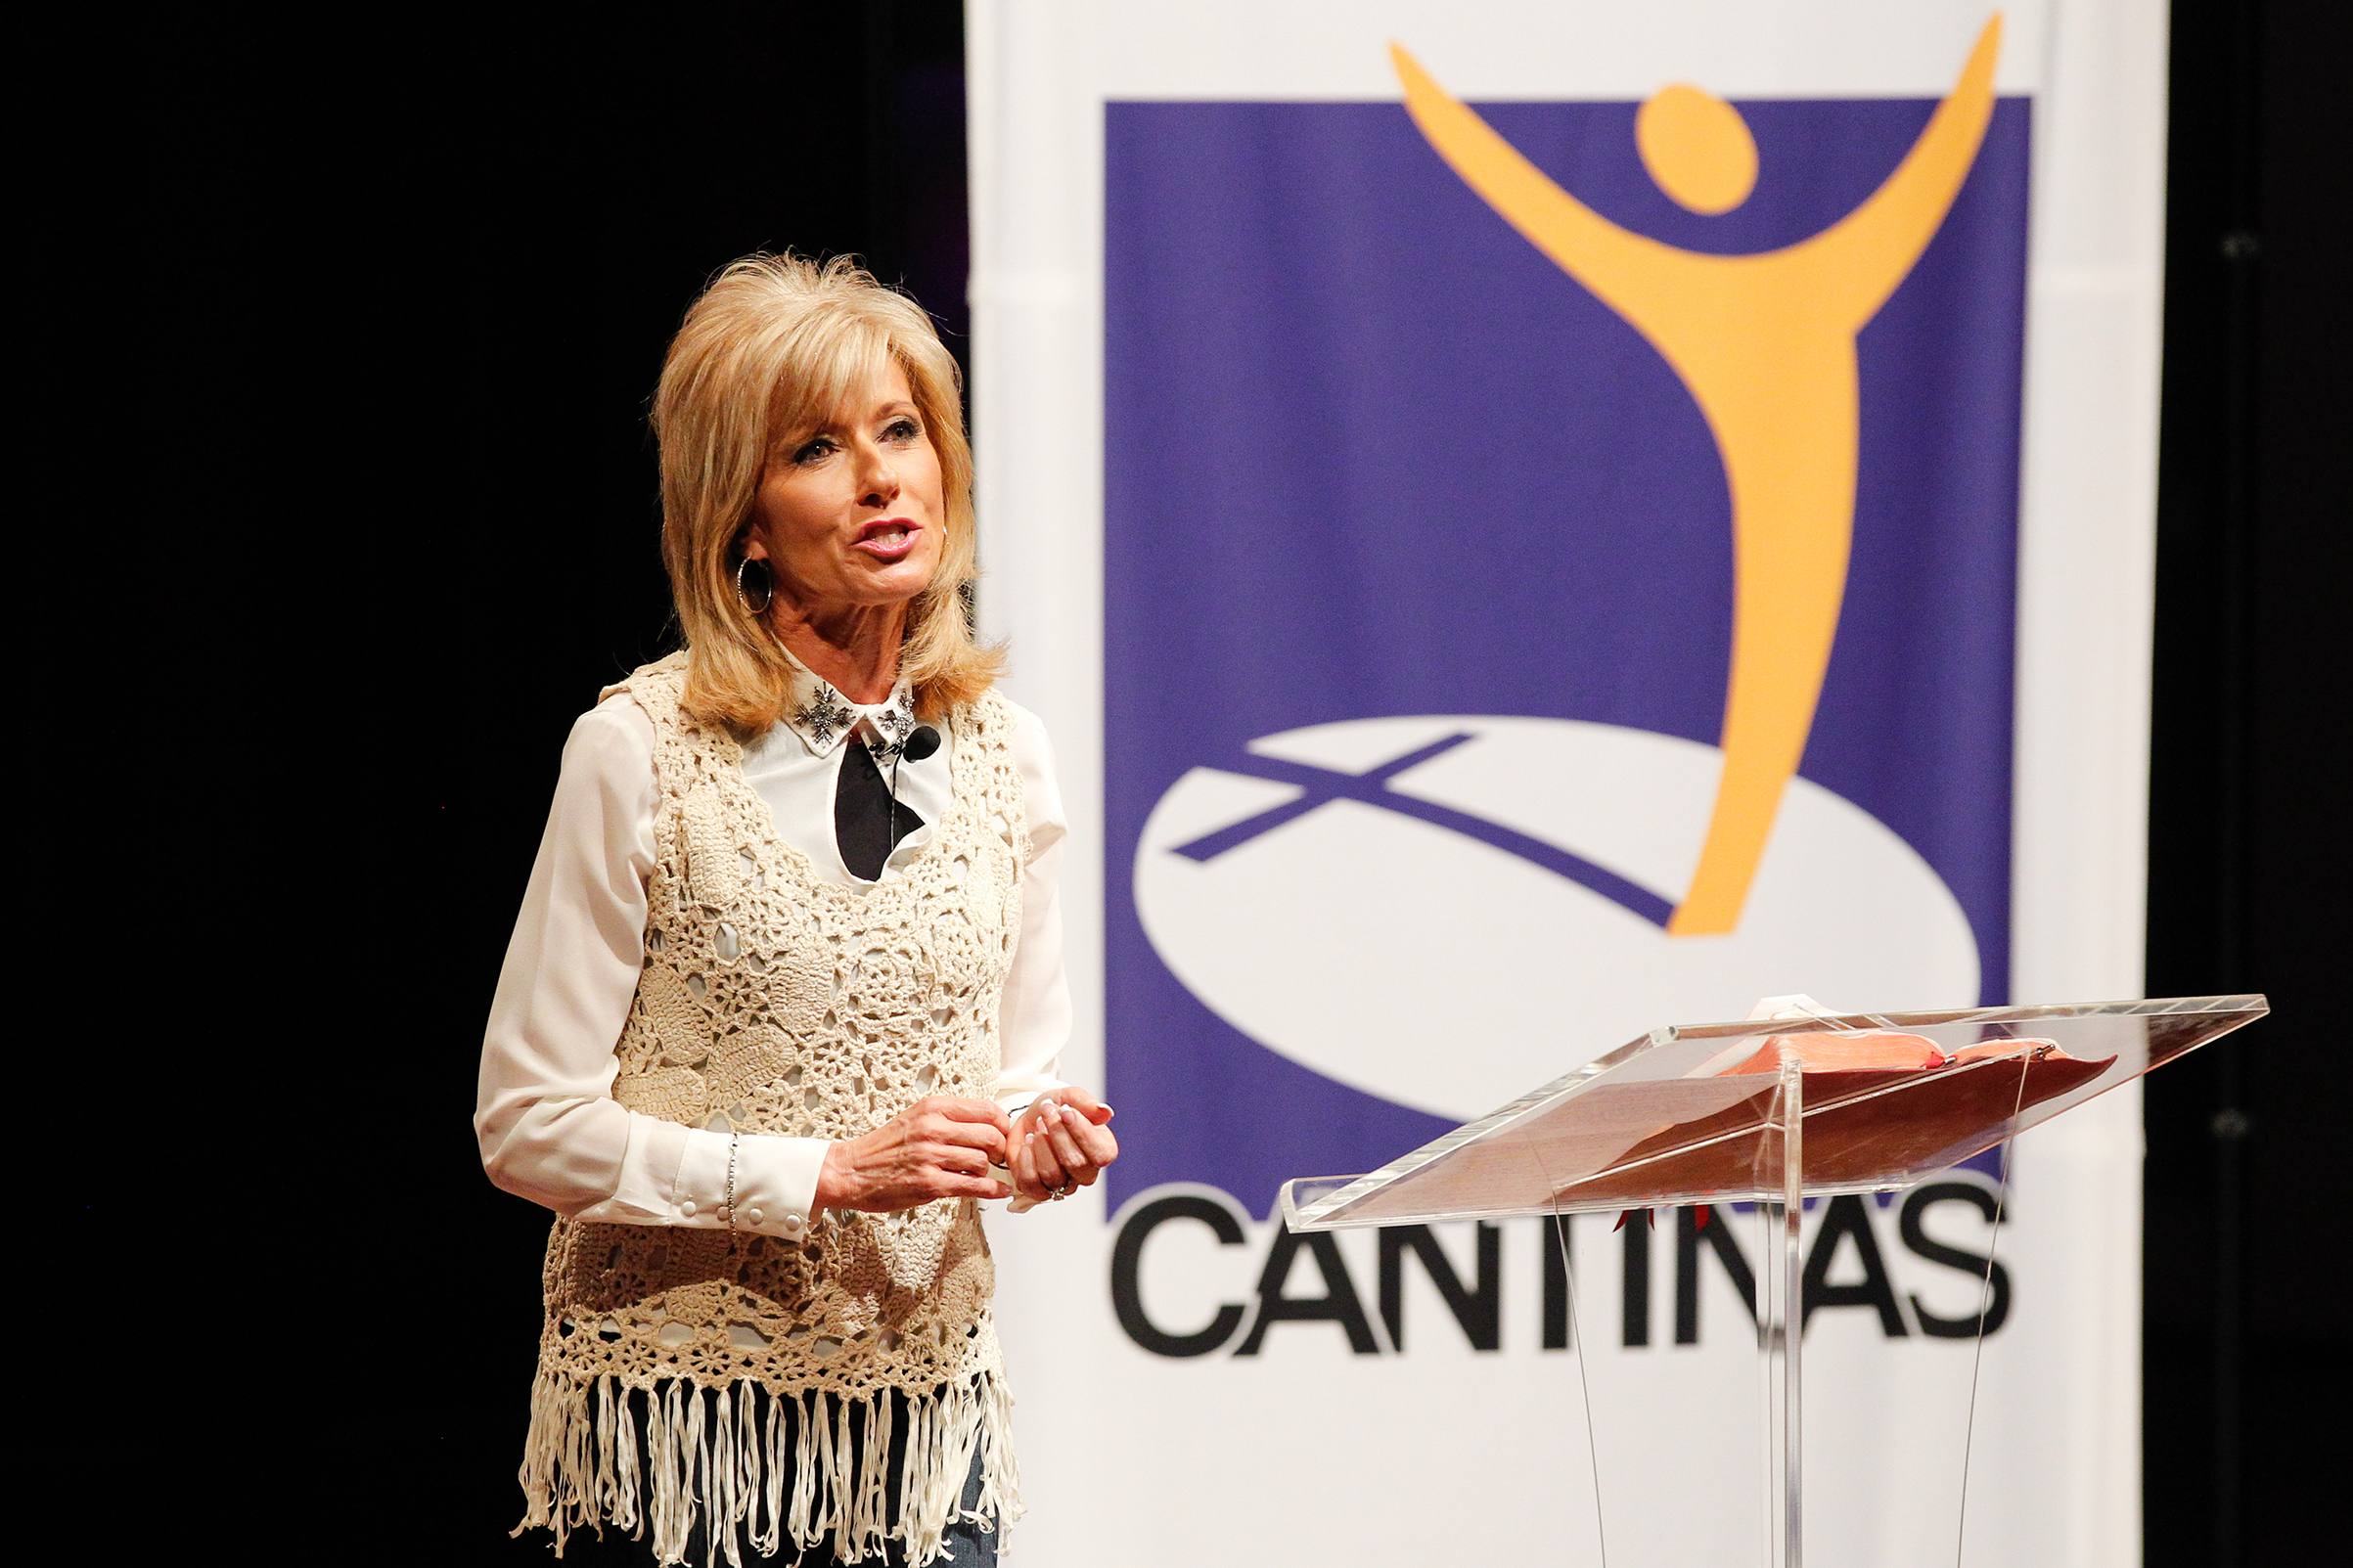 Evangelist and author Beth Moore speaks at the Dove Nominee Luncheon on Oct. 6, 2014 in Nashville.